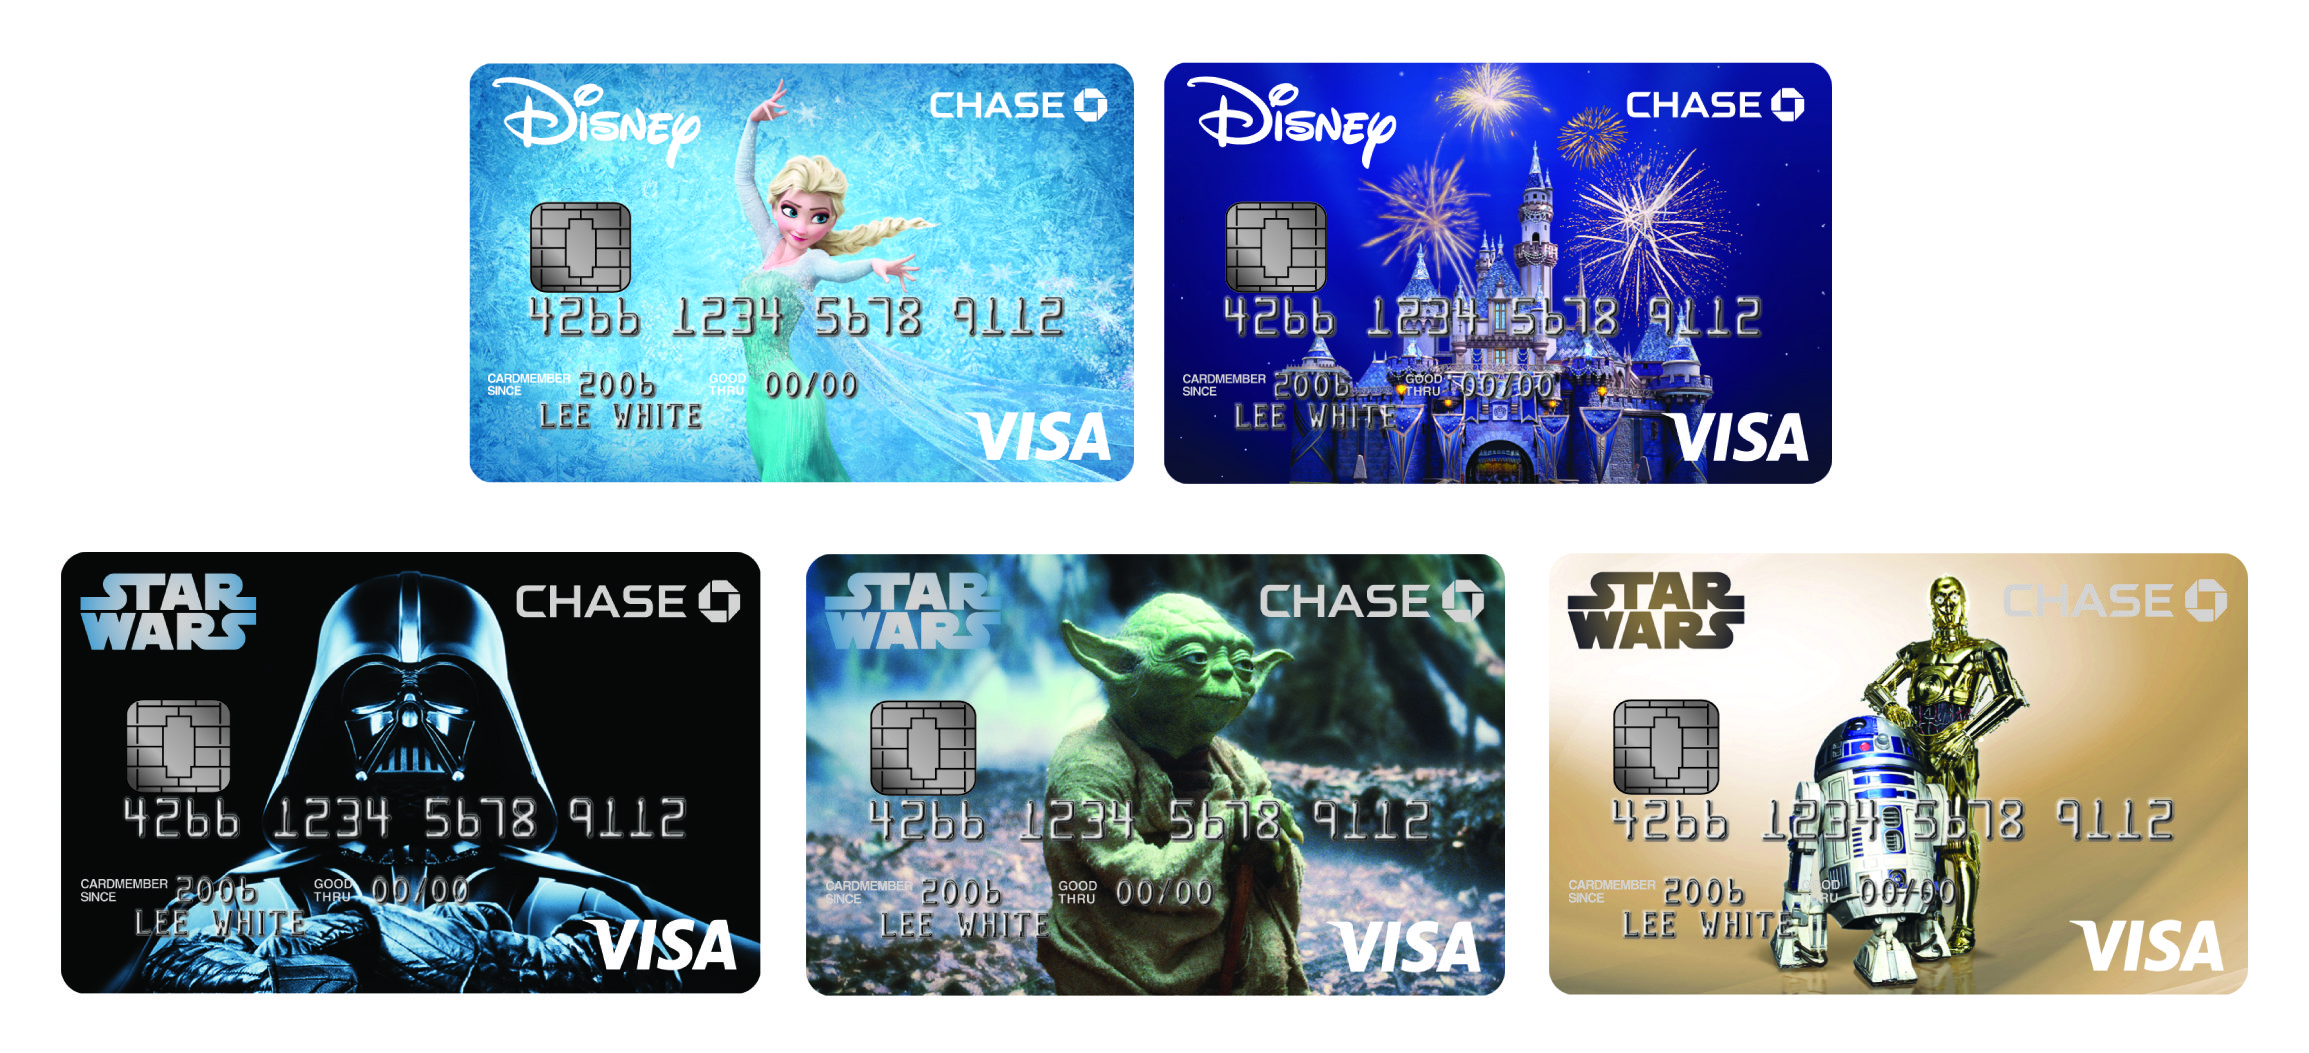 New Chase Debit Card Design